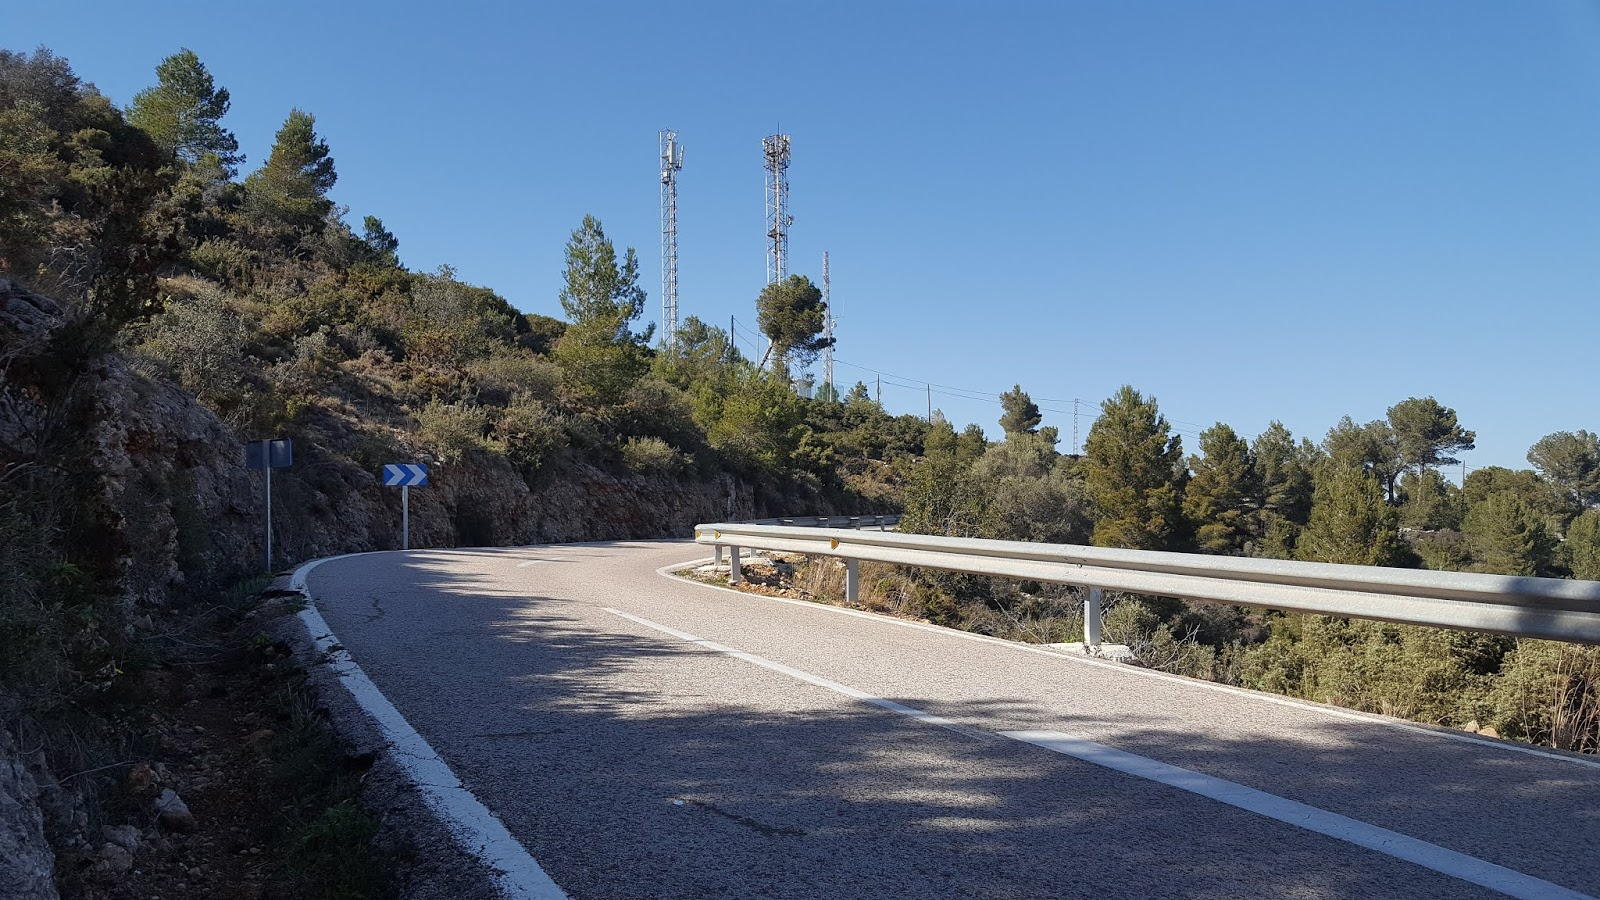 Communication antennae on Coll de Rates